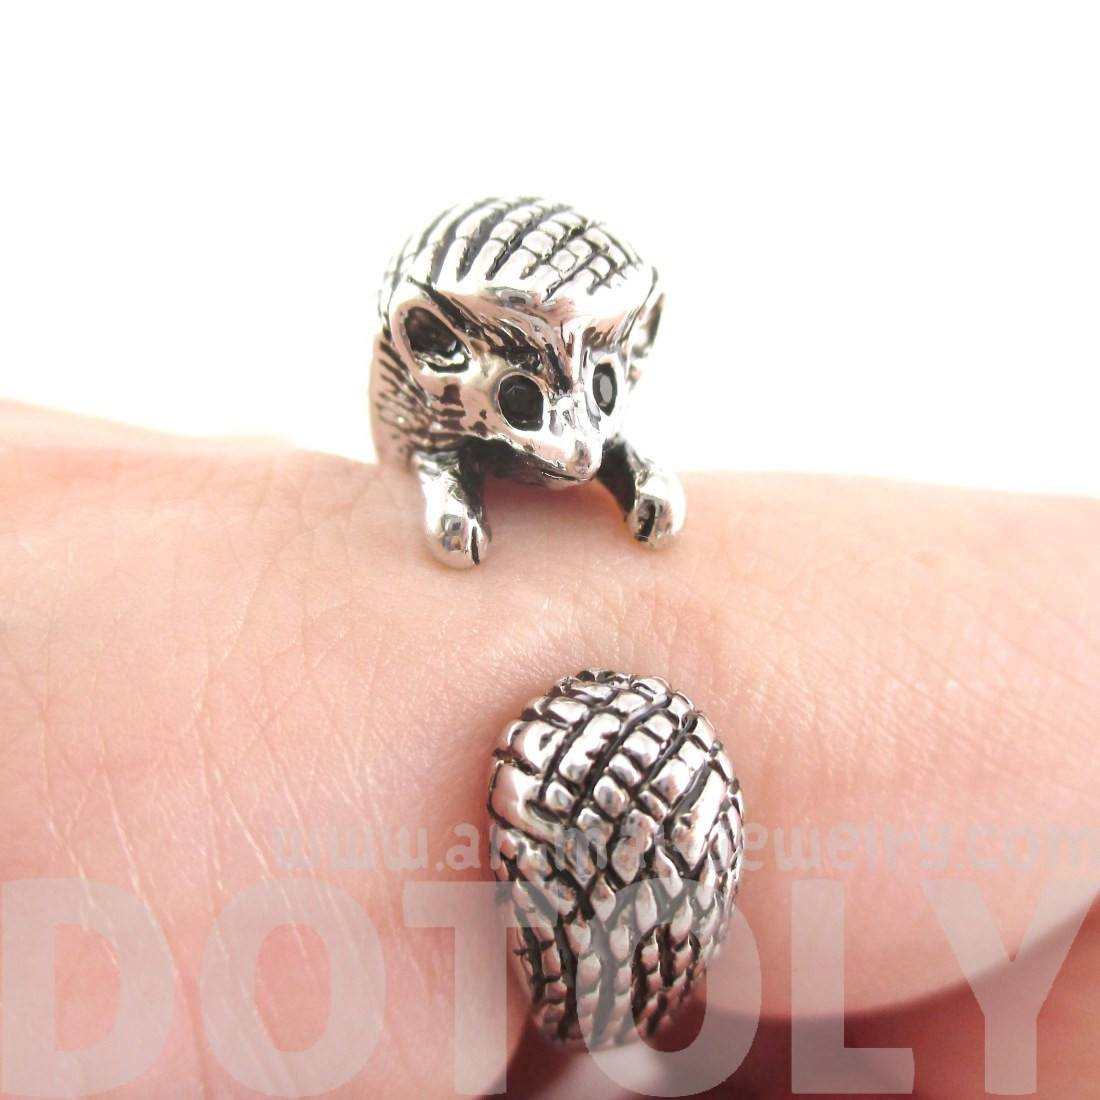 Hedgehog Porcupine Shaped Animal Ring in Shiny Silver